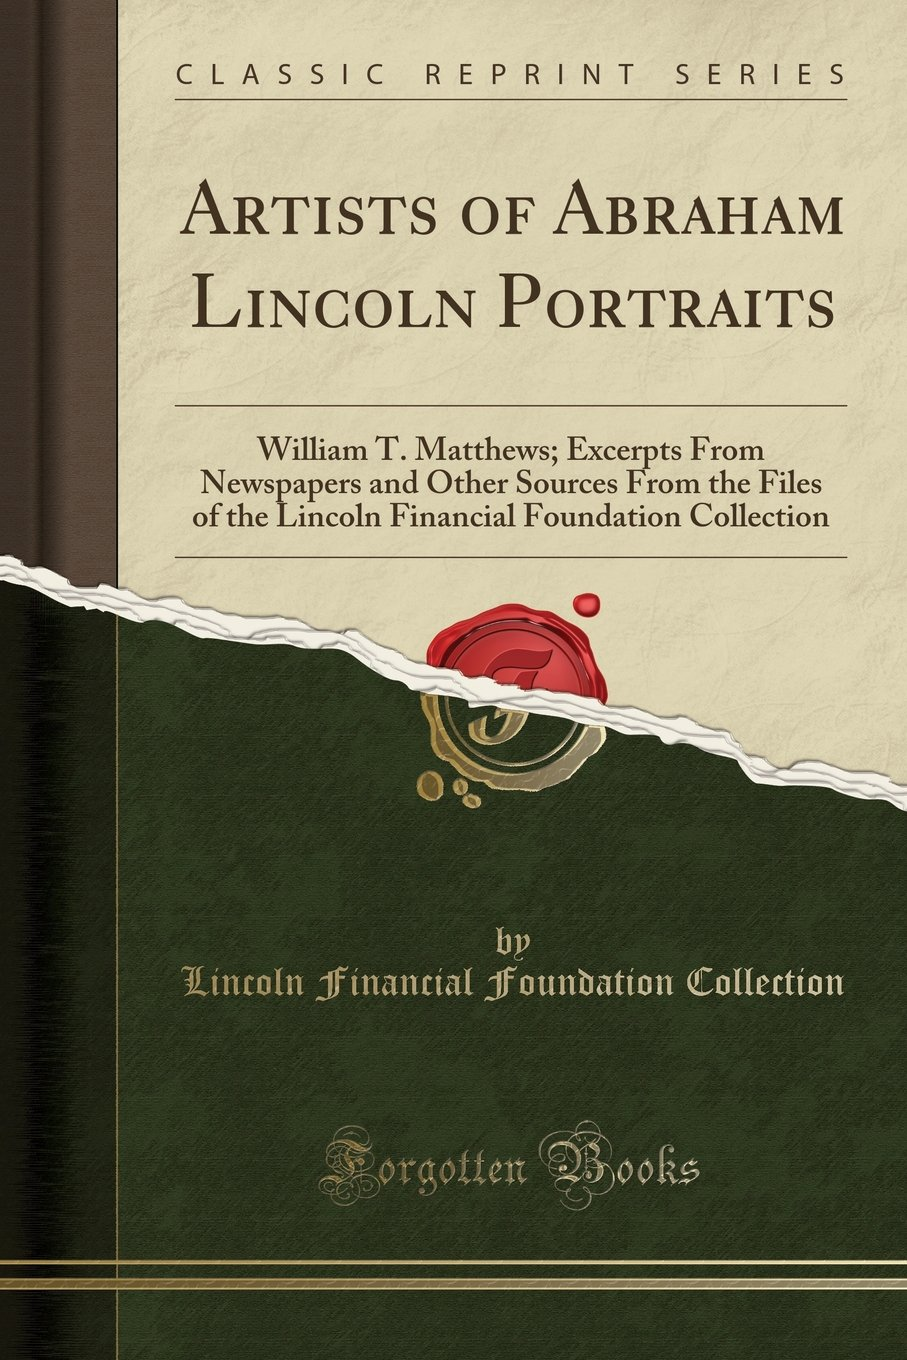 Artists of Abraham Lincoln Portraits: William T. Matthews; Excerpts From Newspapers and Other Sources From the Files of the Lincoln Financial Foundation Collection (Classic Reprint) pdf